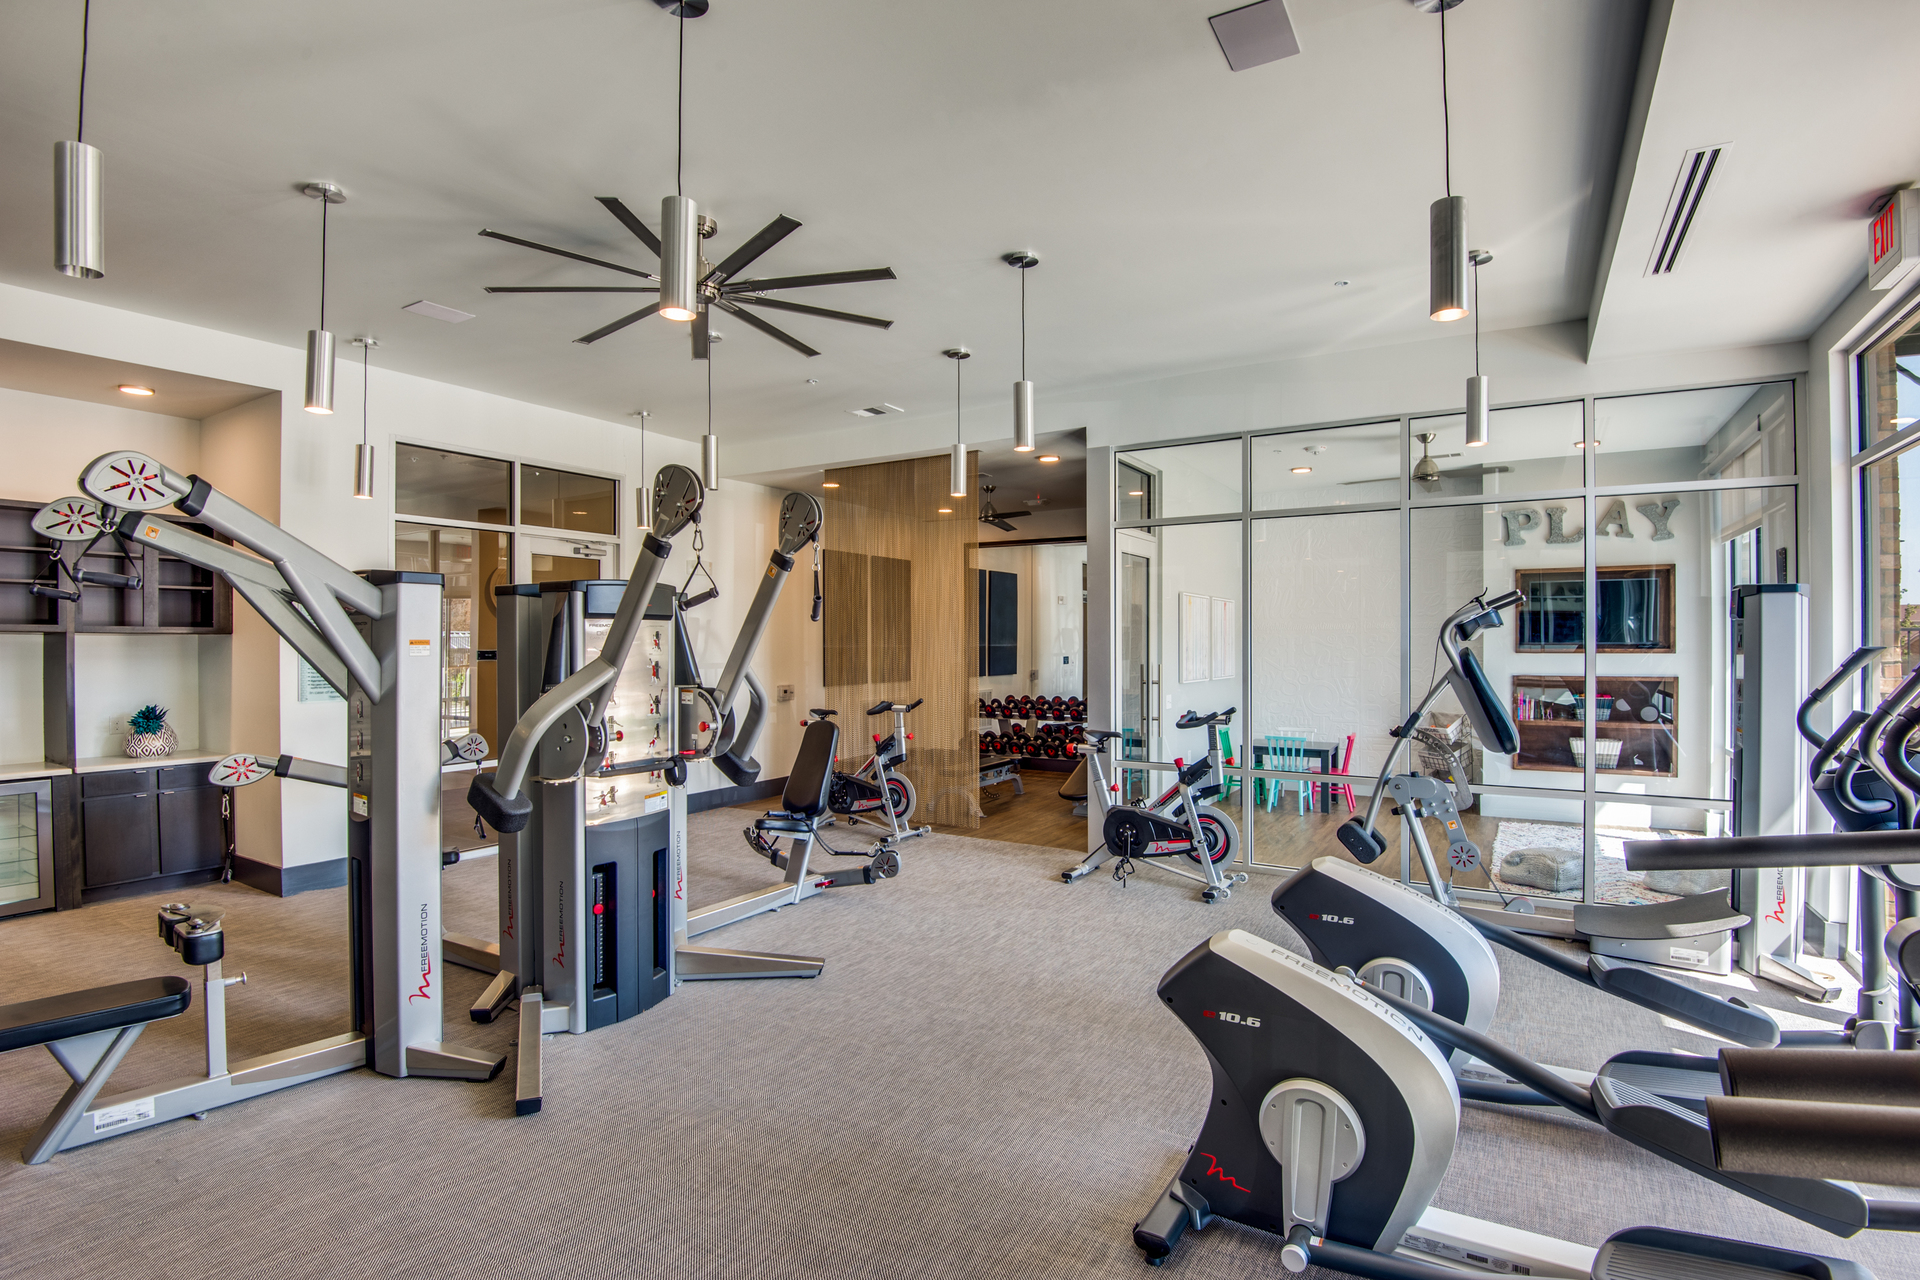 Fitness center including an area for the kids to play while you work out.